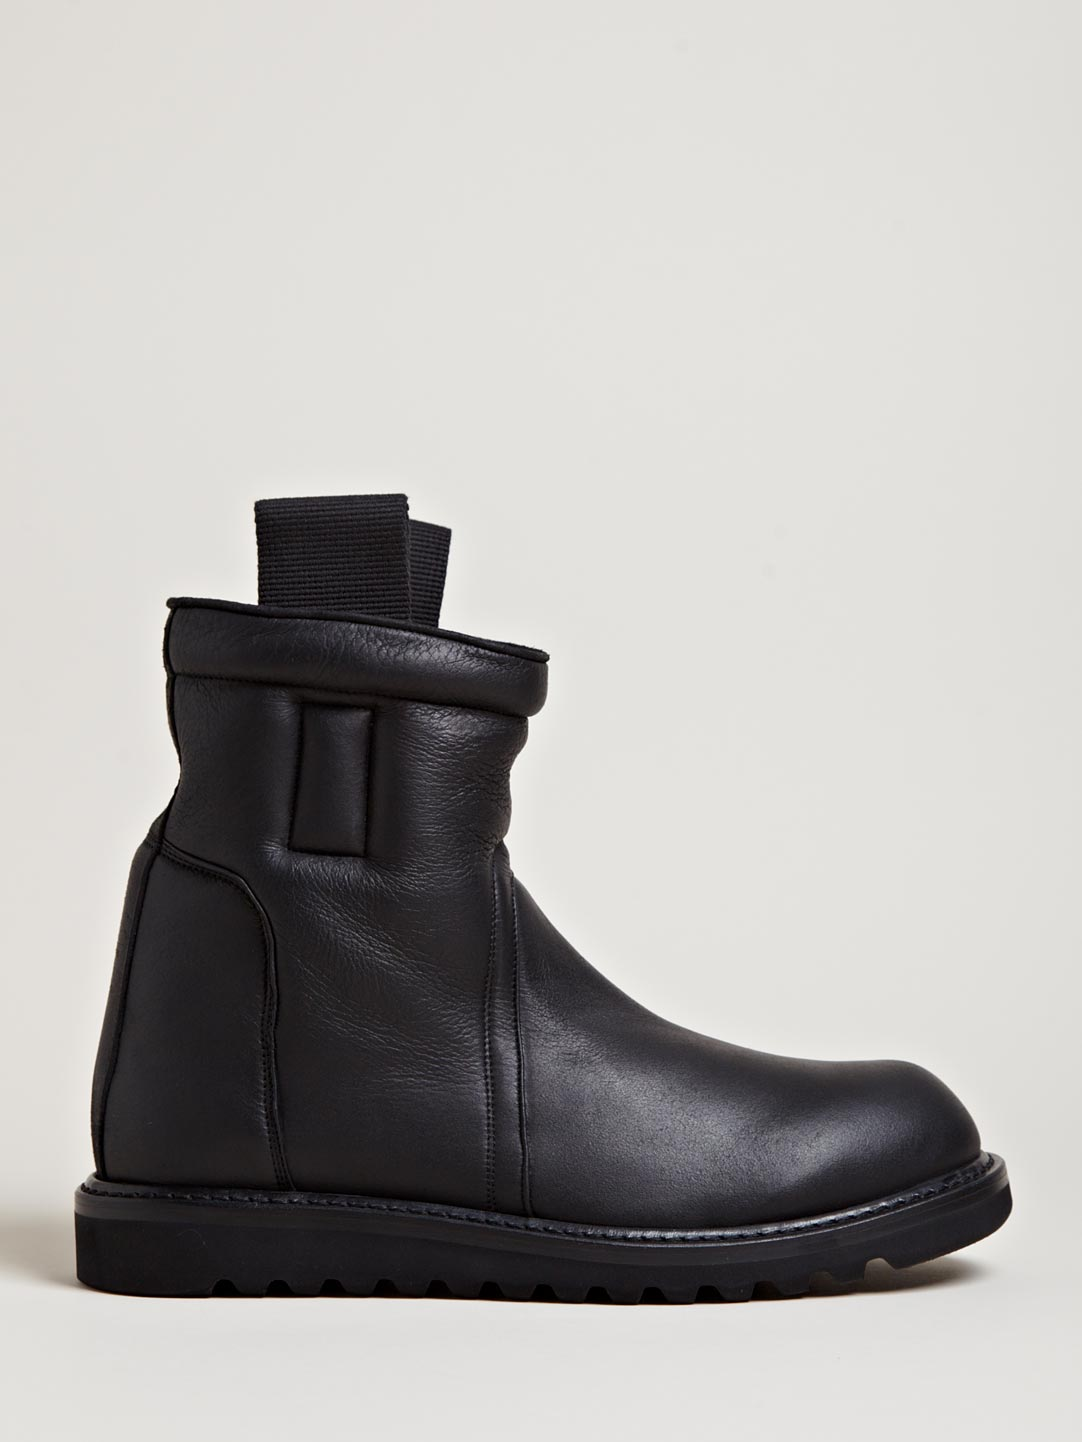 Hogan Mens Shoes Rick Owens Mens Shearling Lined Boots In Black For Men | Lyst